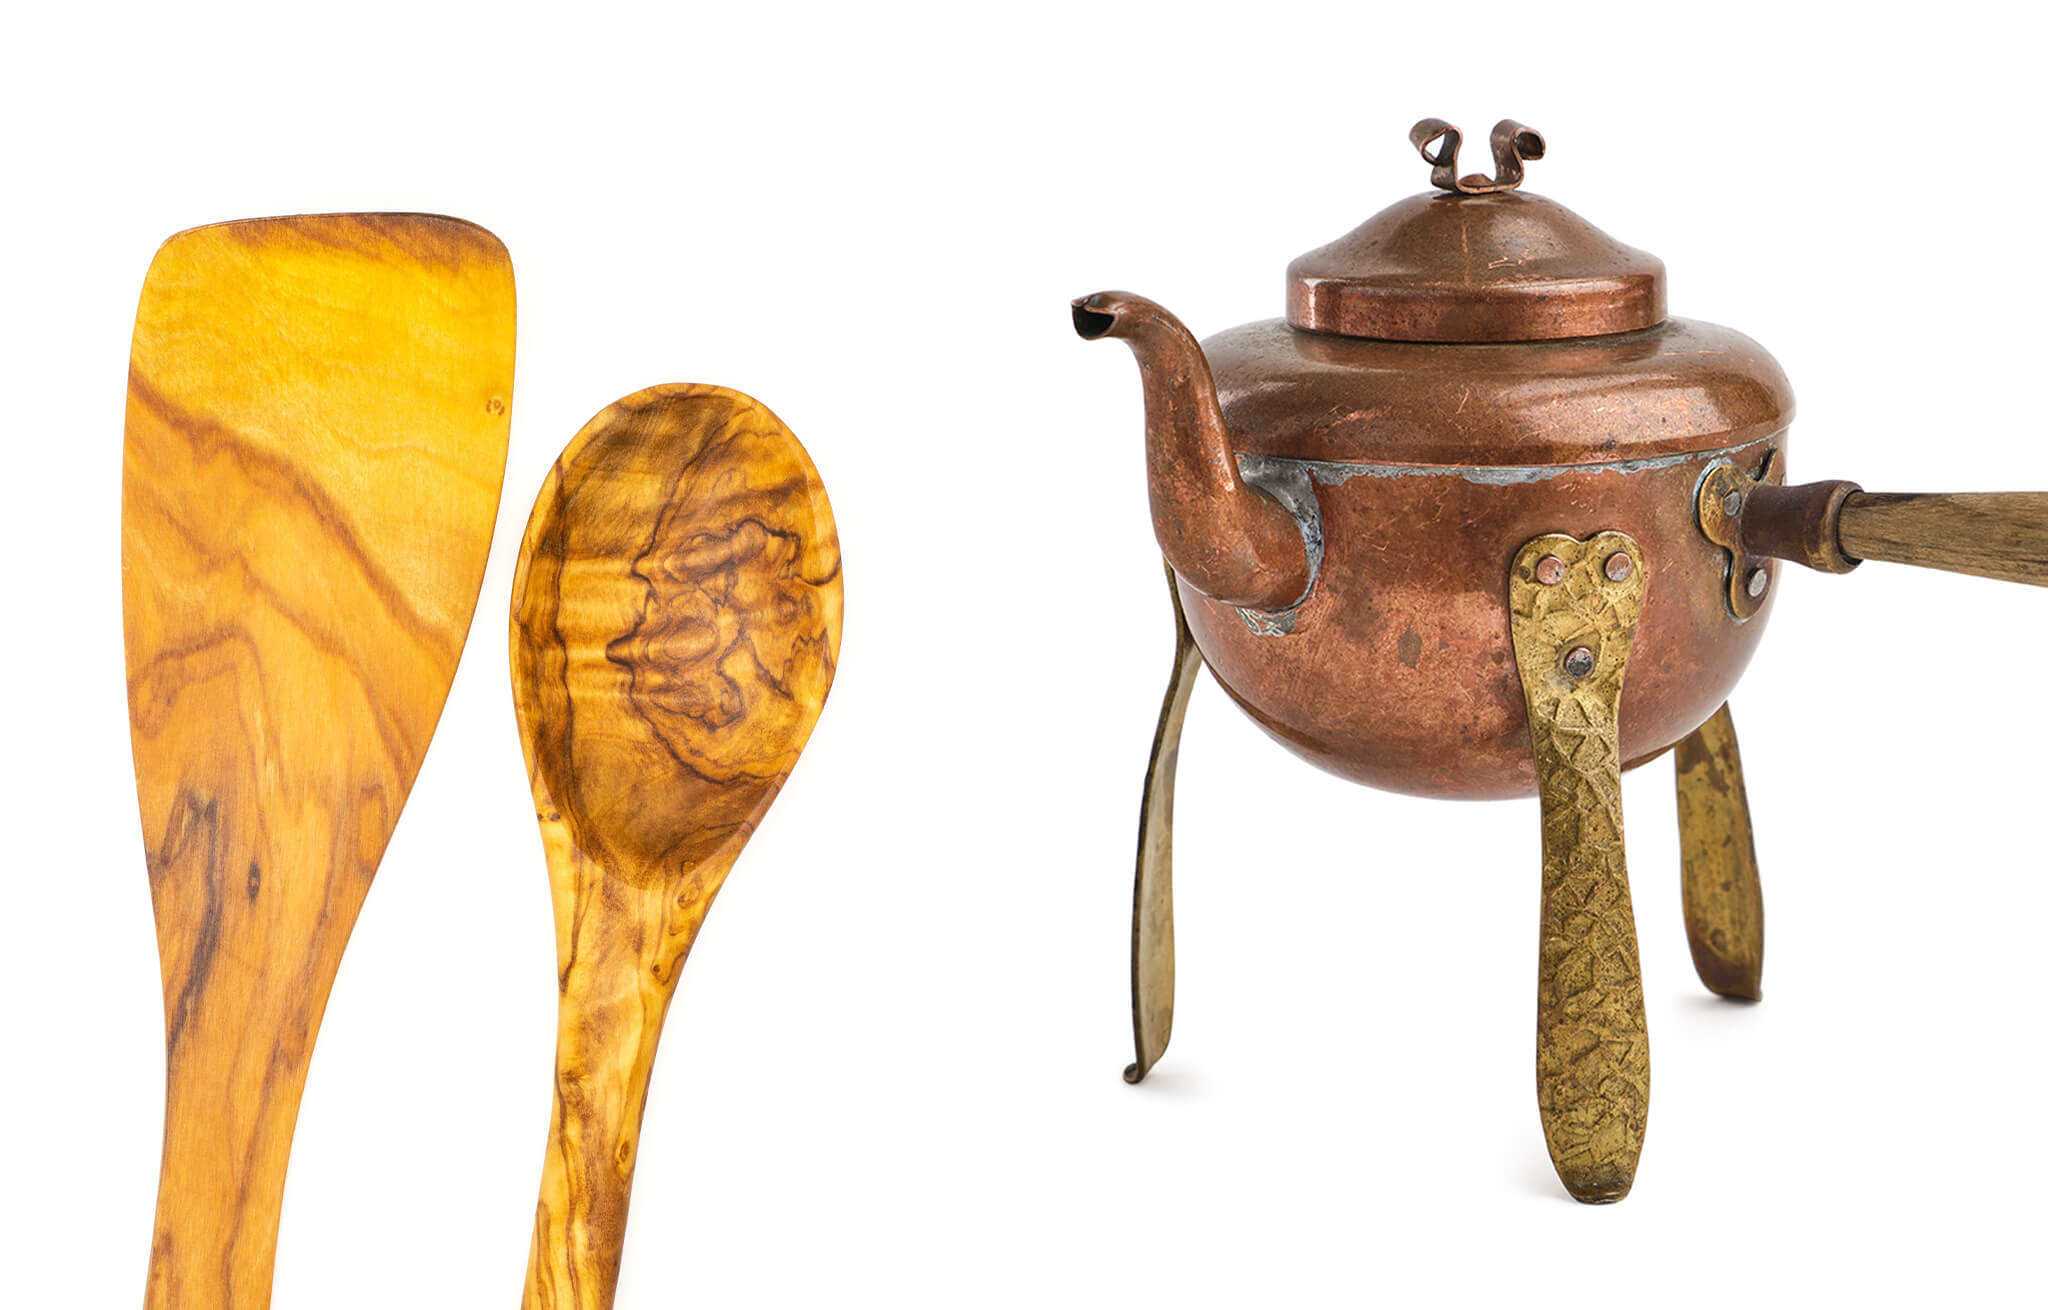 Mediterranean materials olivewood wooden spoon and copper metal teakettle